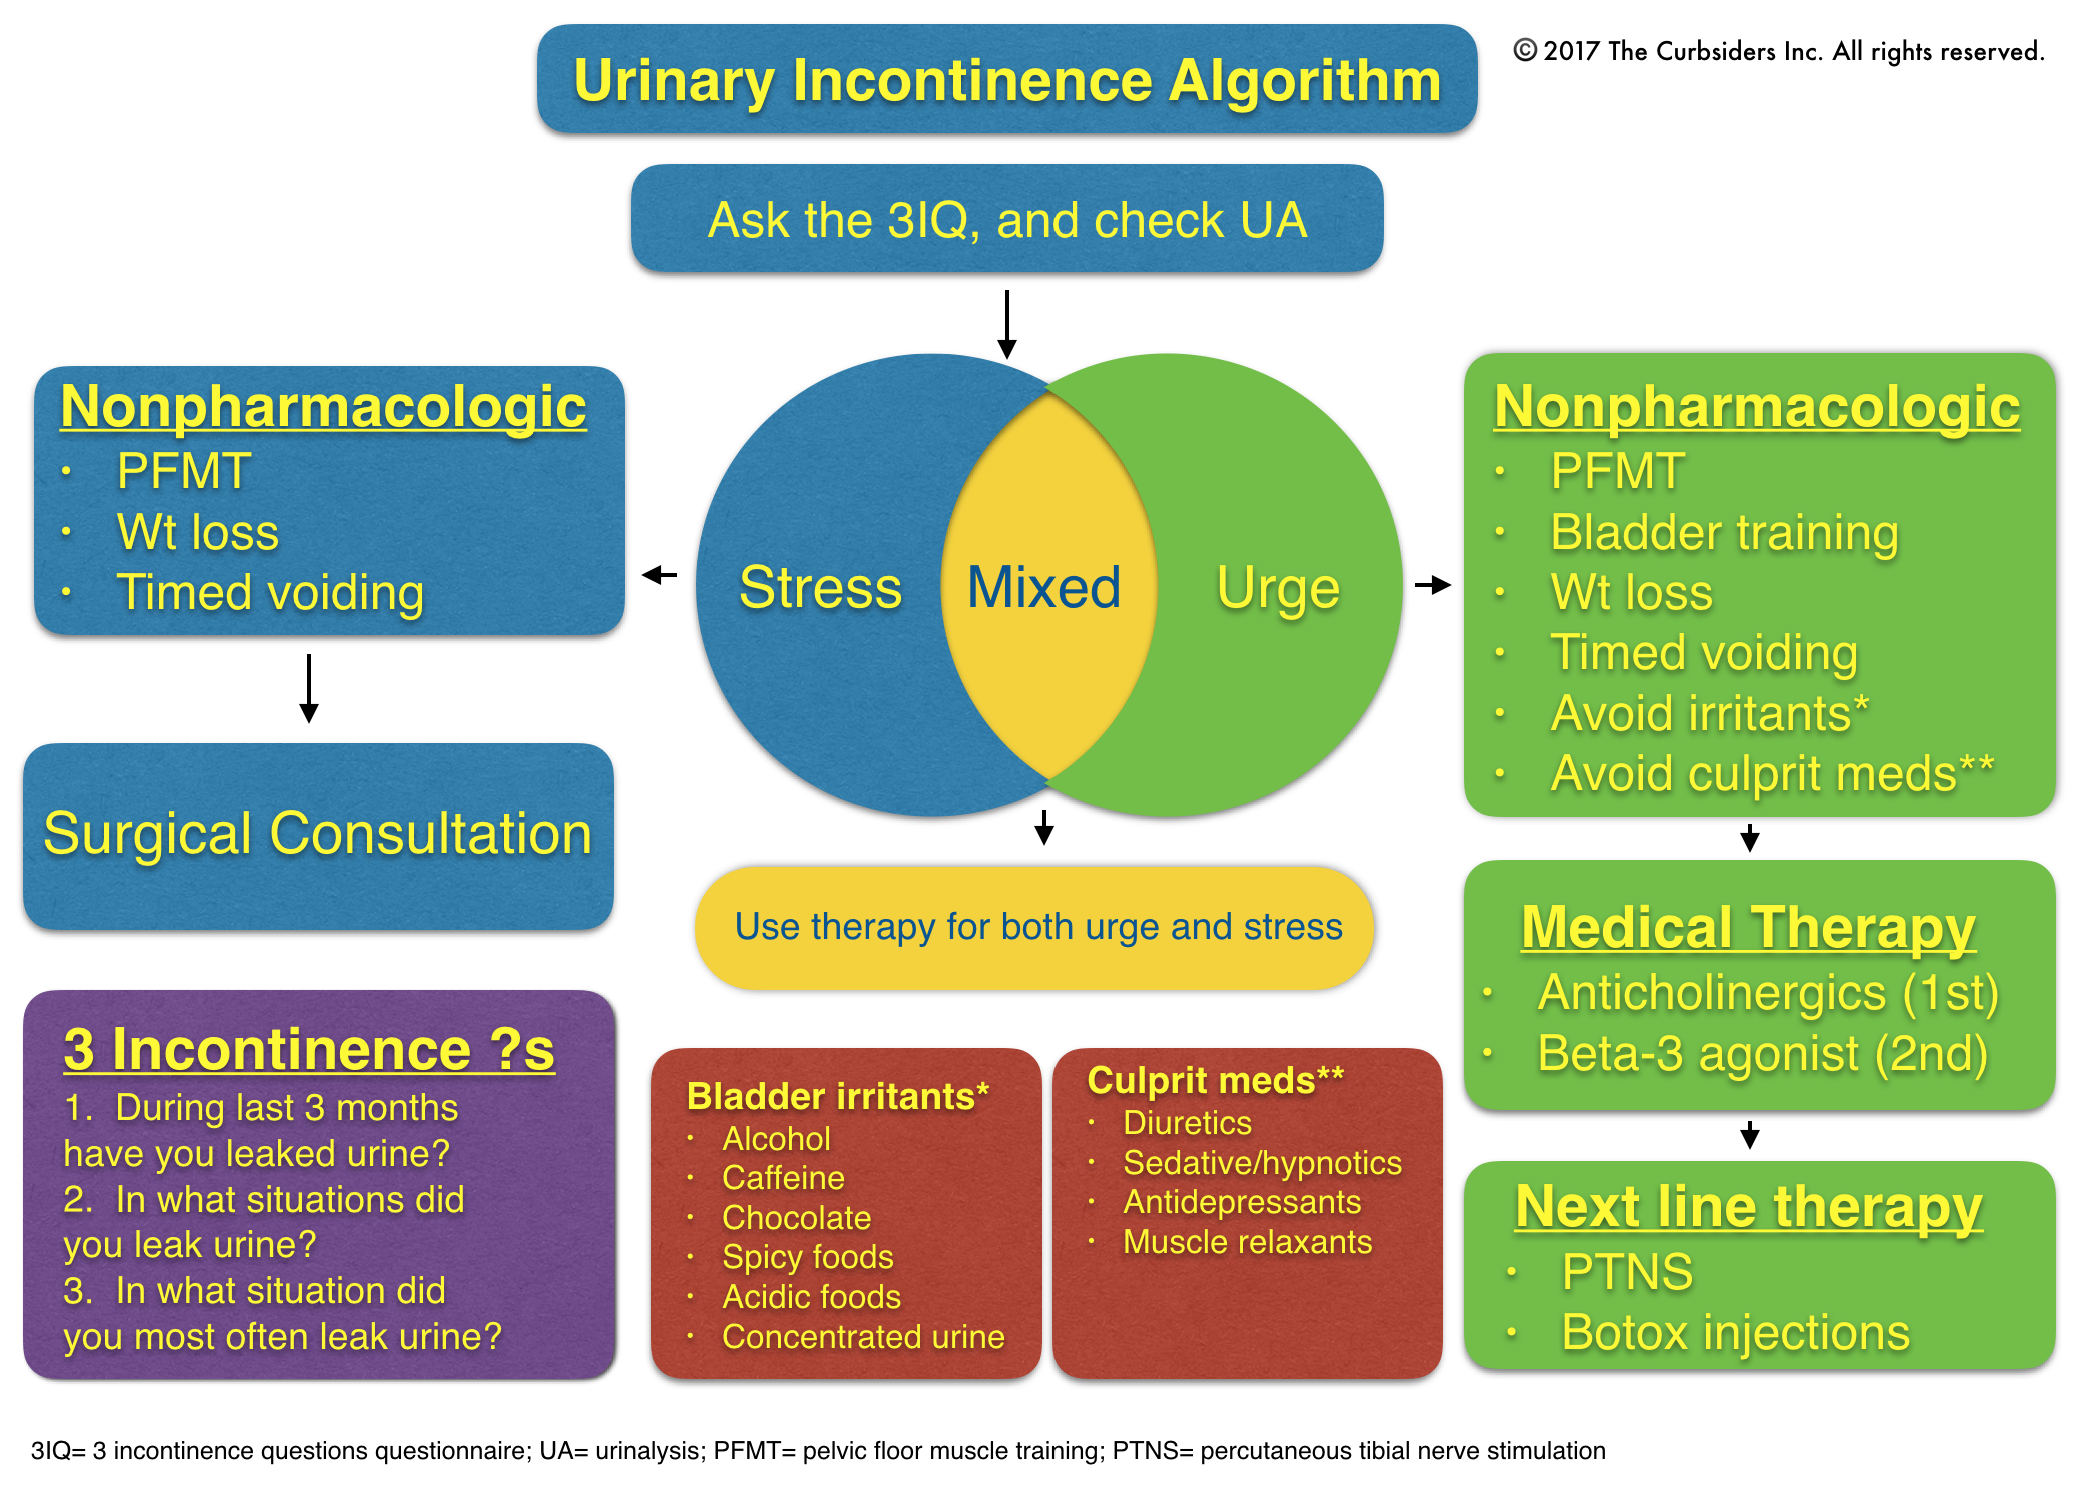 urinalysis obstetrics and william a alto 9 mary beth sutter, lawrence leeman, andrew hsi, neonatal opioid withdrawal syndrome, obstetrics and gynecology clinics of north america, 2014, 41, 2, 317crossref 10 sarah gopman , prenatal and postpartum care of women with substance use disorders, obstetrics and gynecology clinics of north america , 2014 , 41 , 2, 213 crossref.